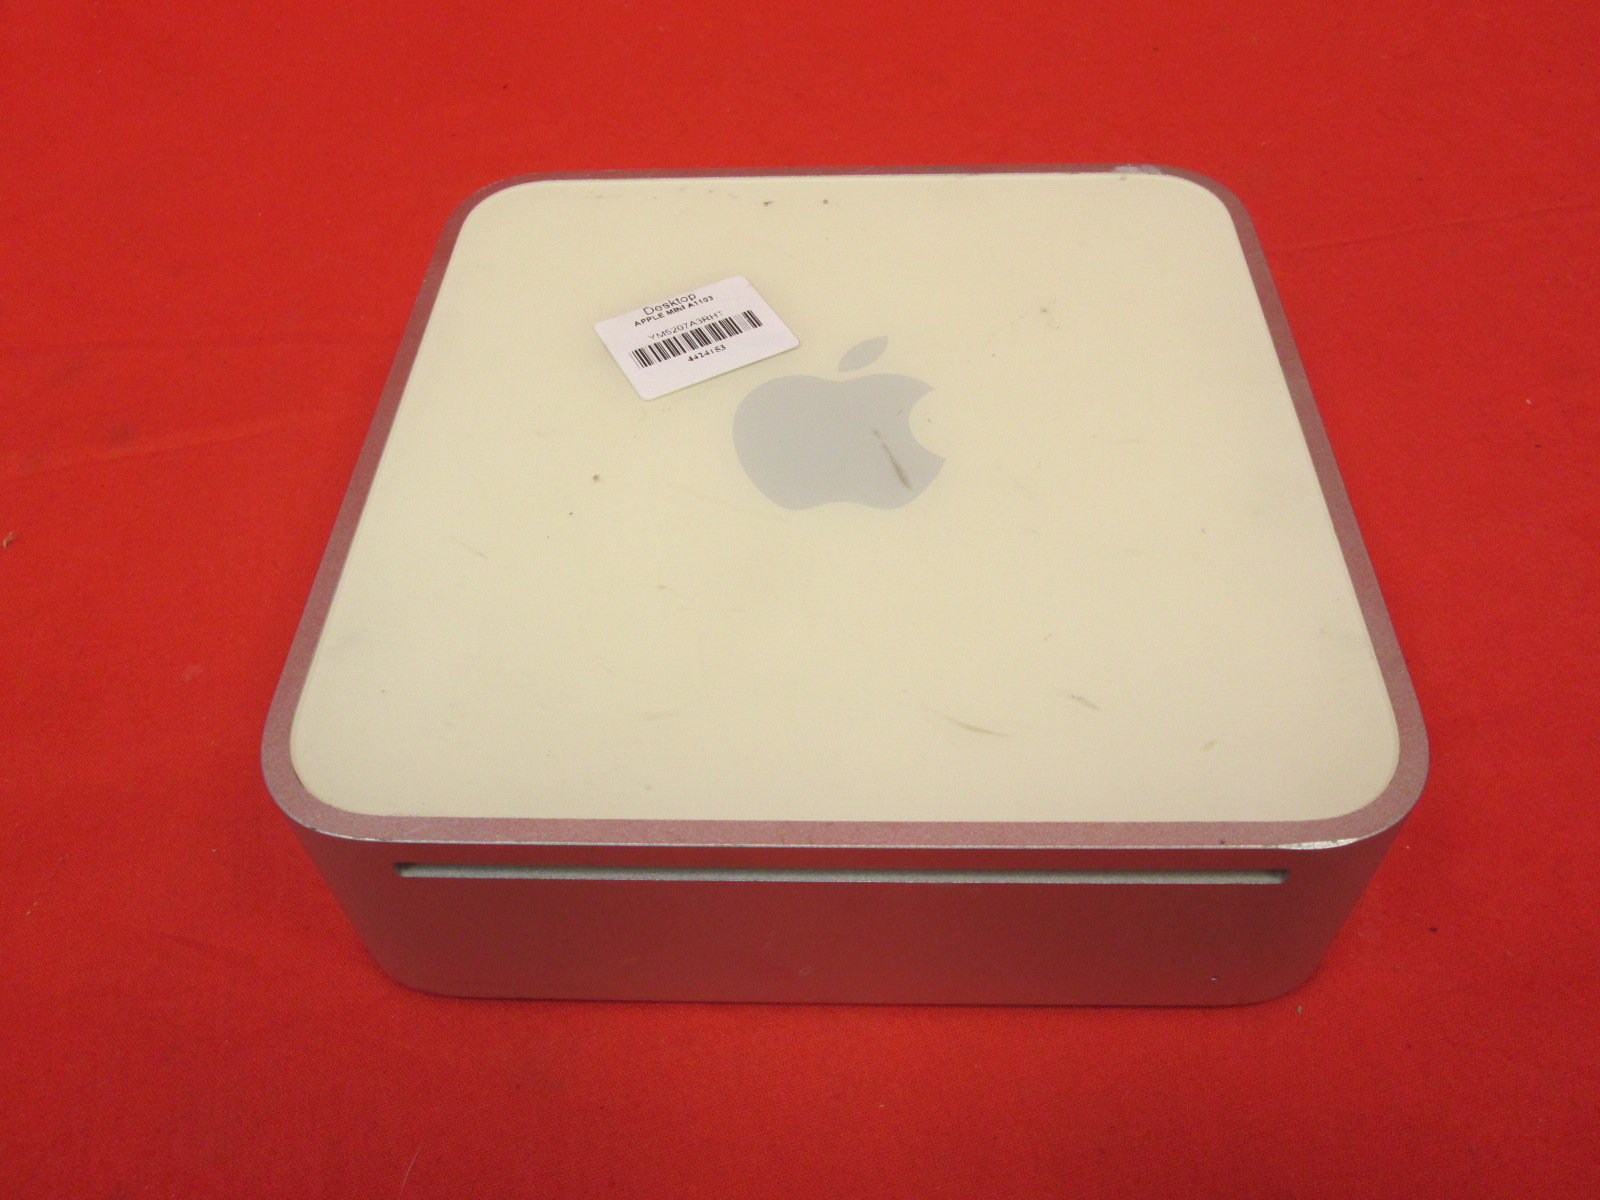 Apple MAC Mini G4 Powerpc G4 1.25GHZ 512MB 40GB Cdrw/dvd Radeon 9200